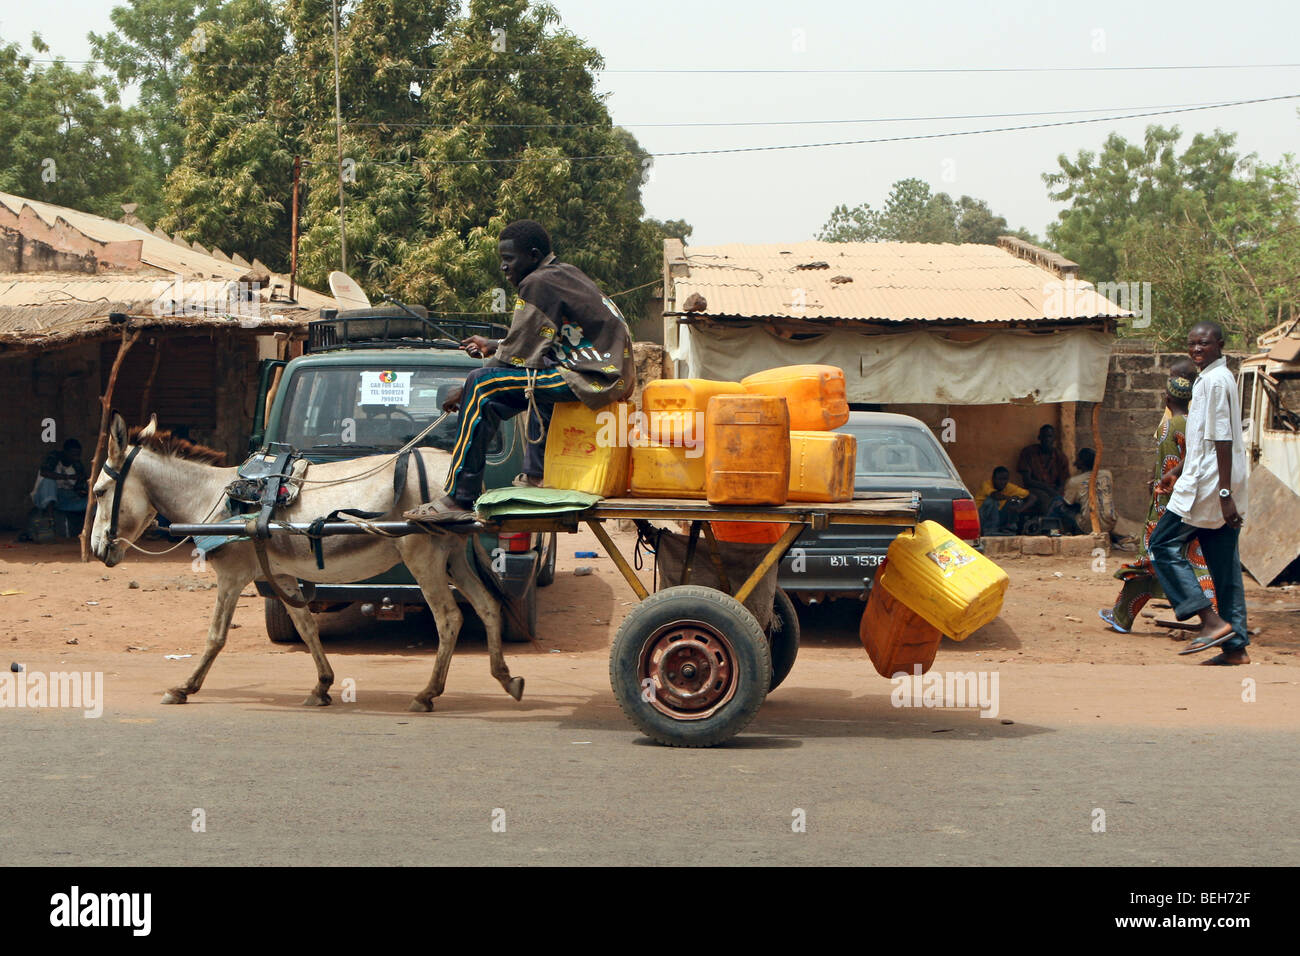 donkey & Cart - water supplies The Gambia Farafenni Market River Gambia - Stock Image